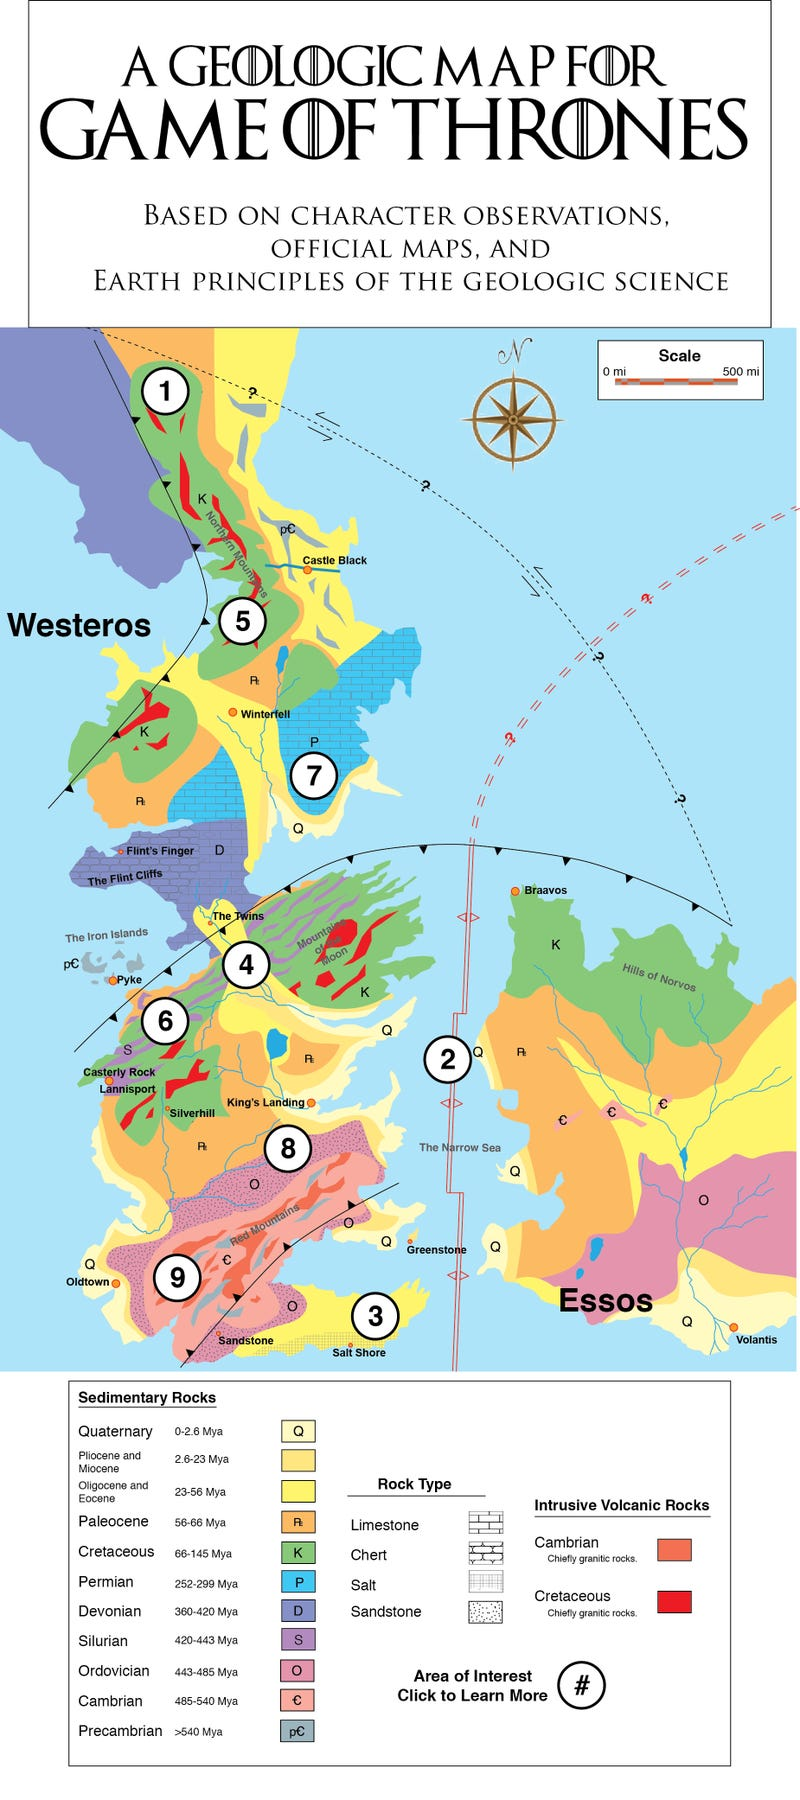 A Fantastically Detailed Geological History for Game of Thrones